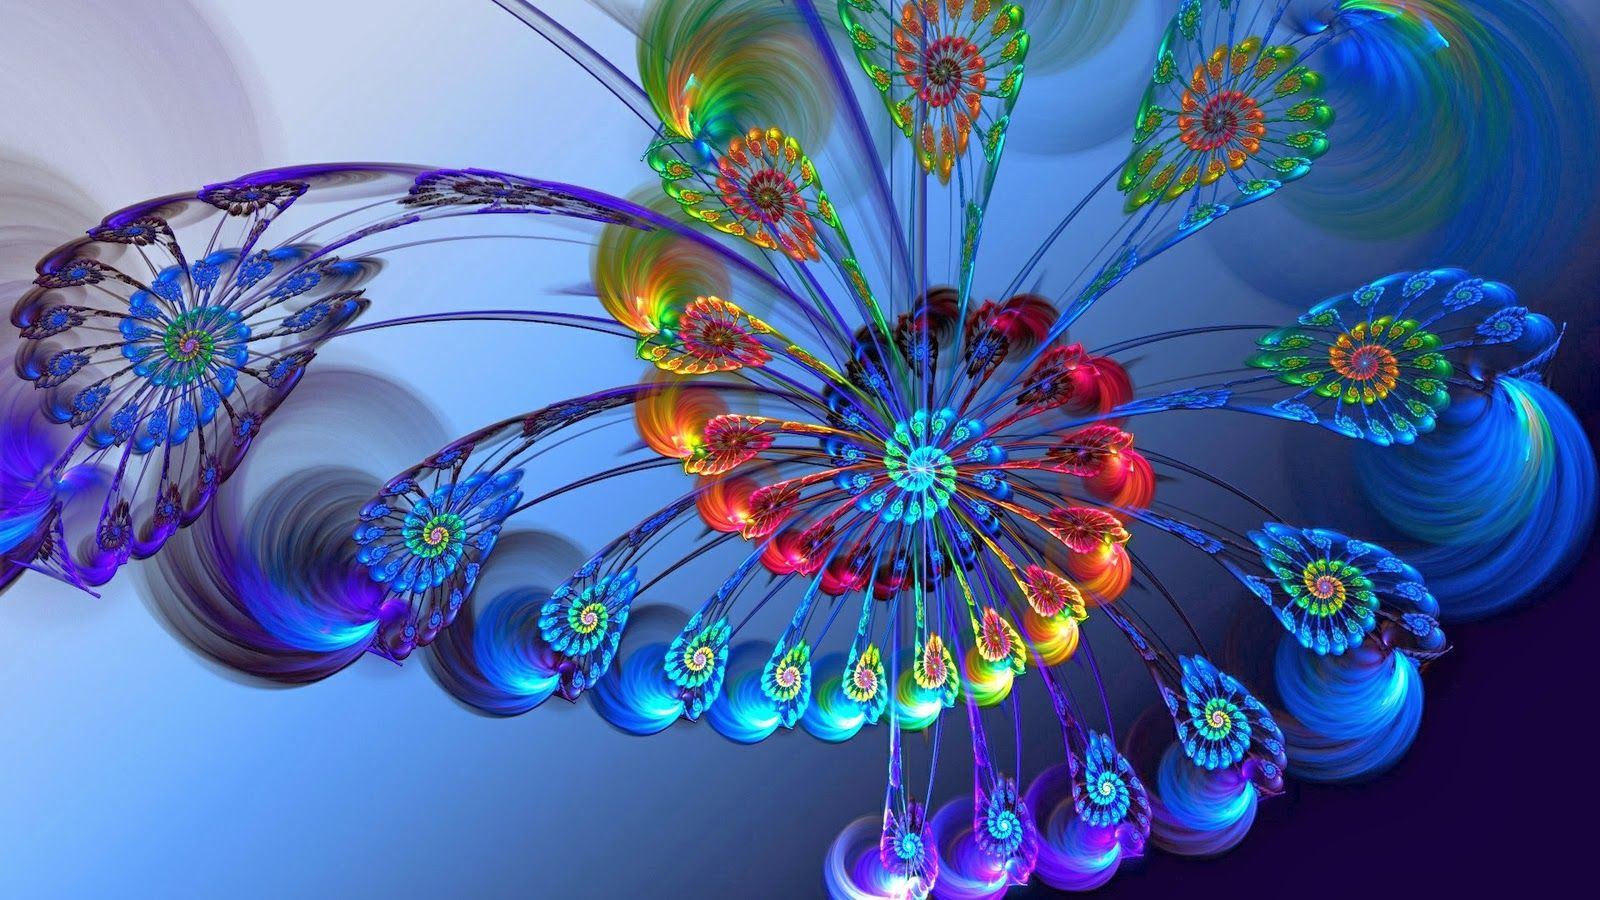 Desktop Hd Peacock Feather Wall Decor 3d Hd Pictures Ryan